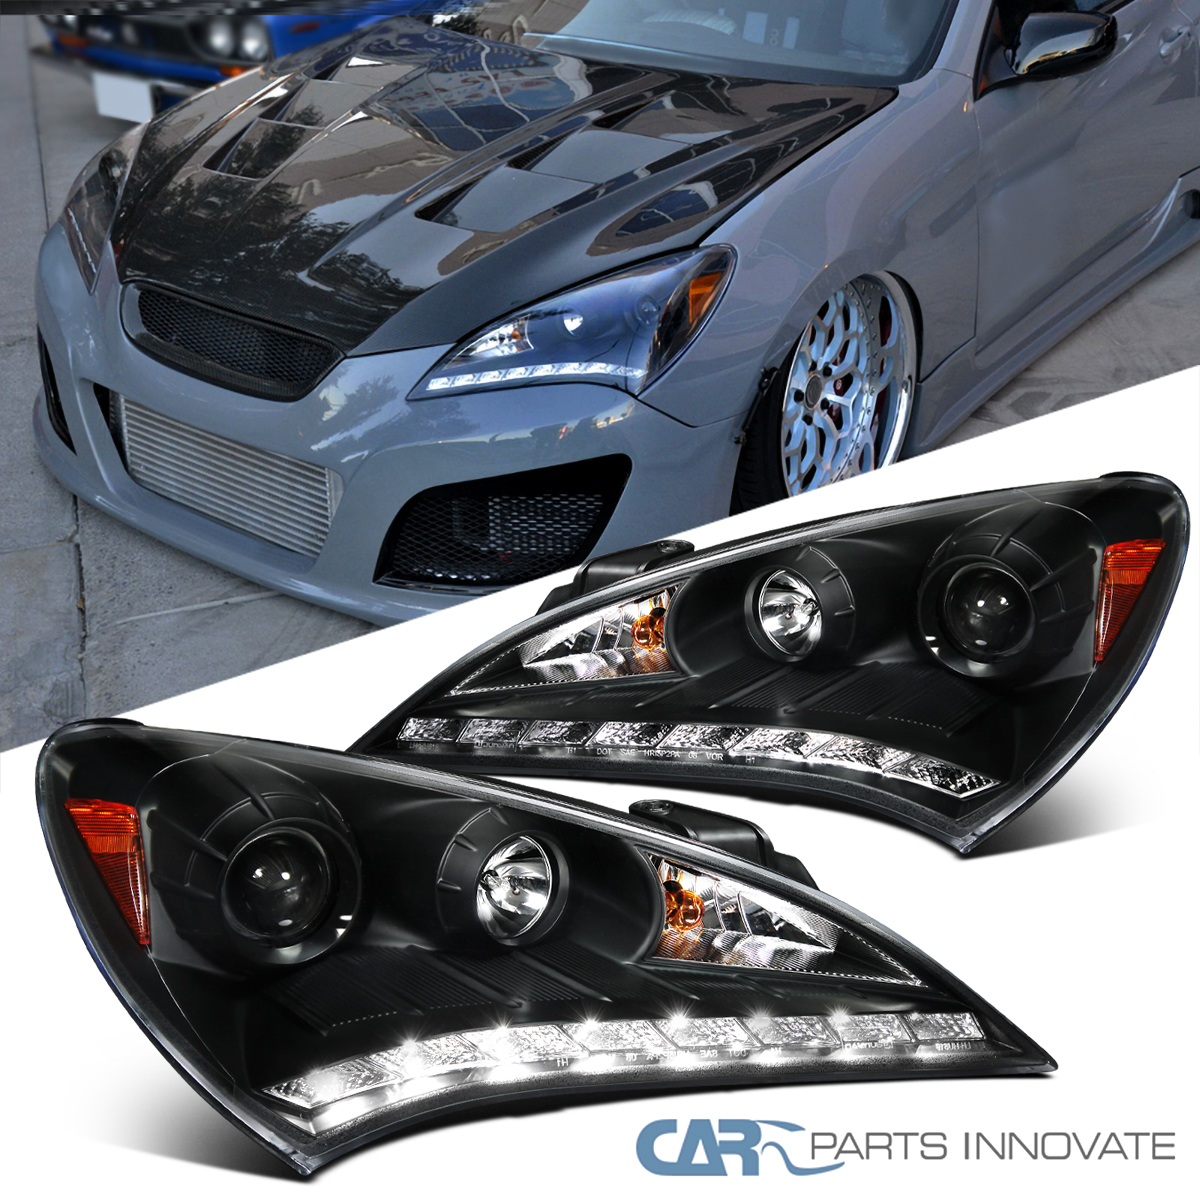 Details About For 10 12 Hyundai Genesis Coupe Black Smd Led Drl Projector Headlights Lamps